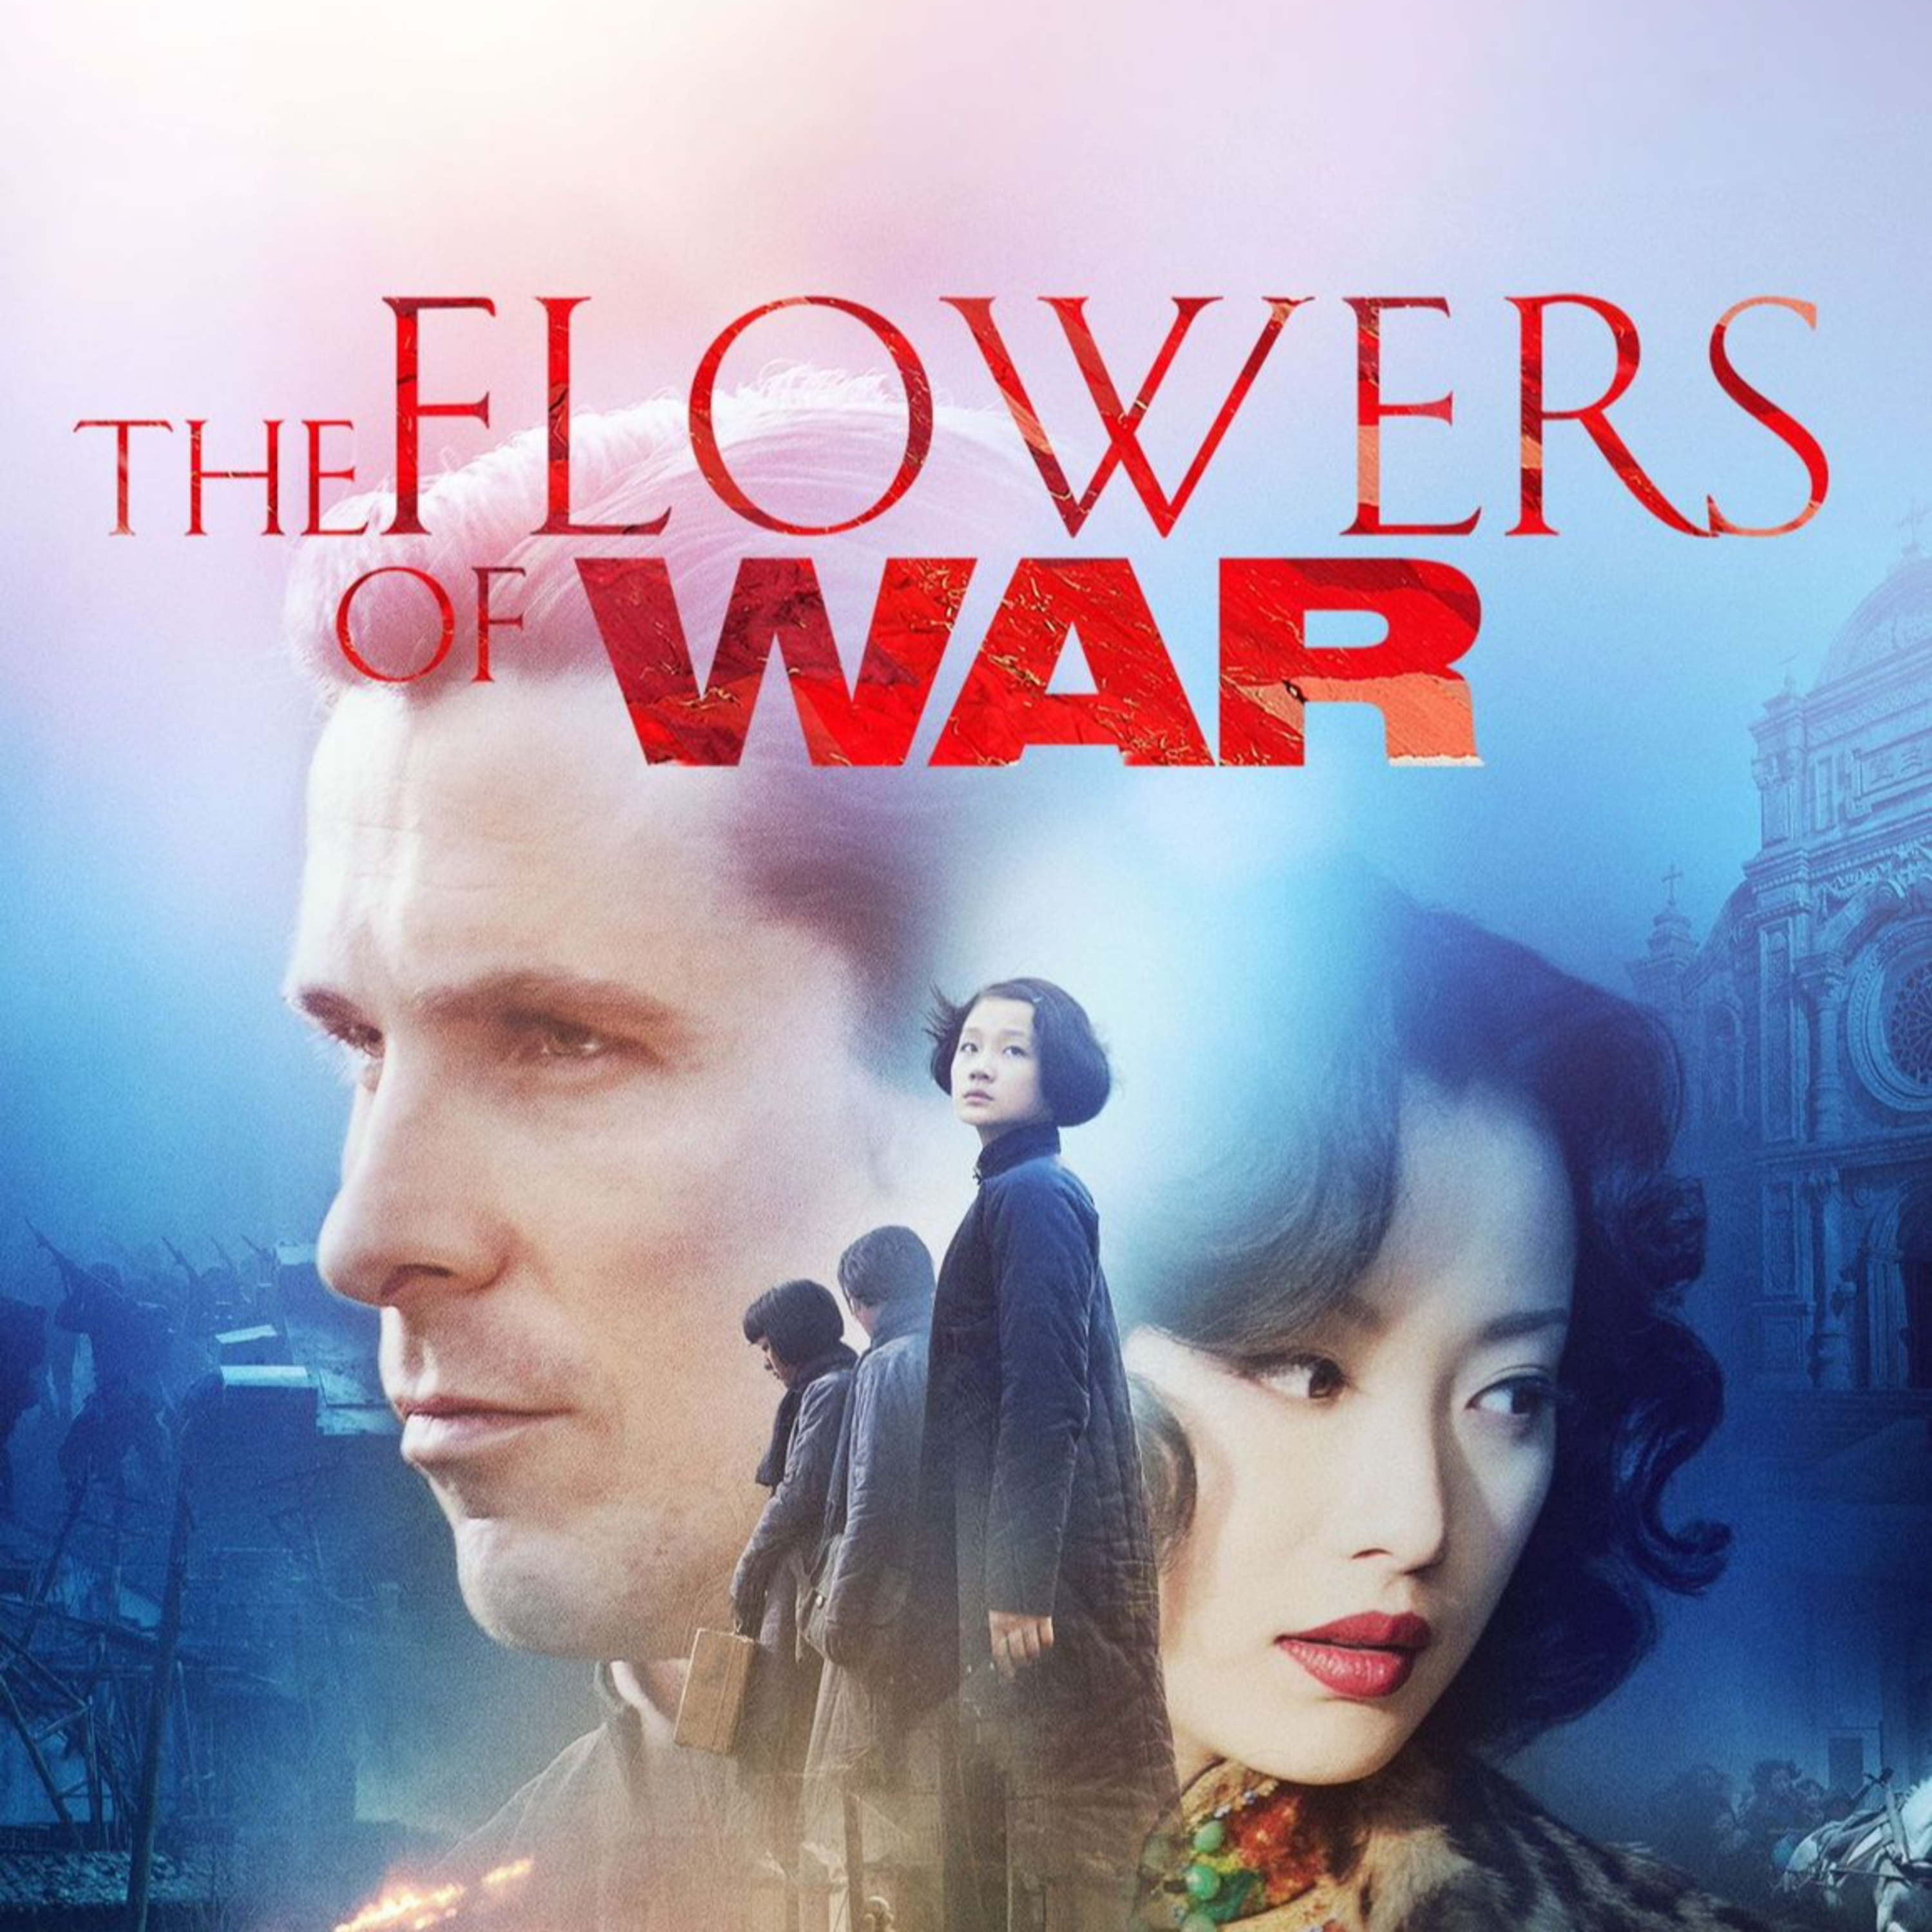 Episode 3. The Flowers of War (what day is it?)